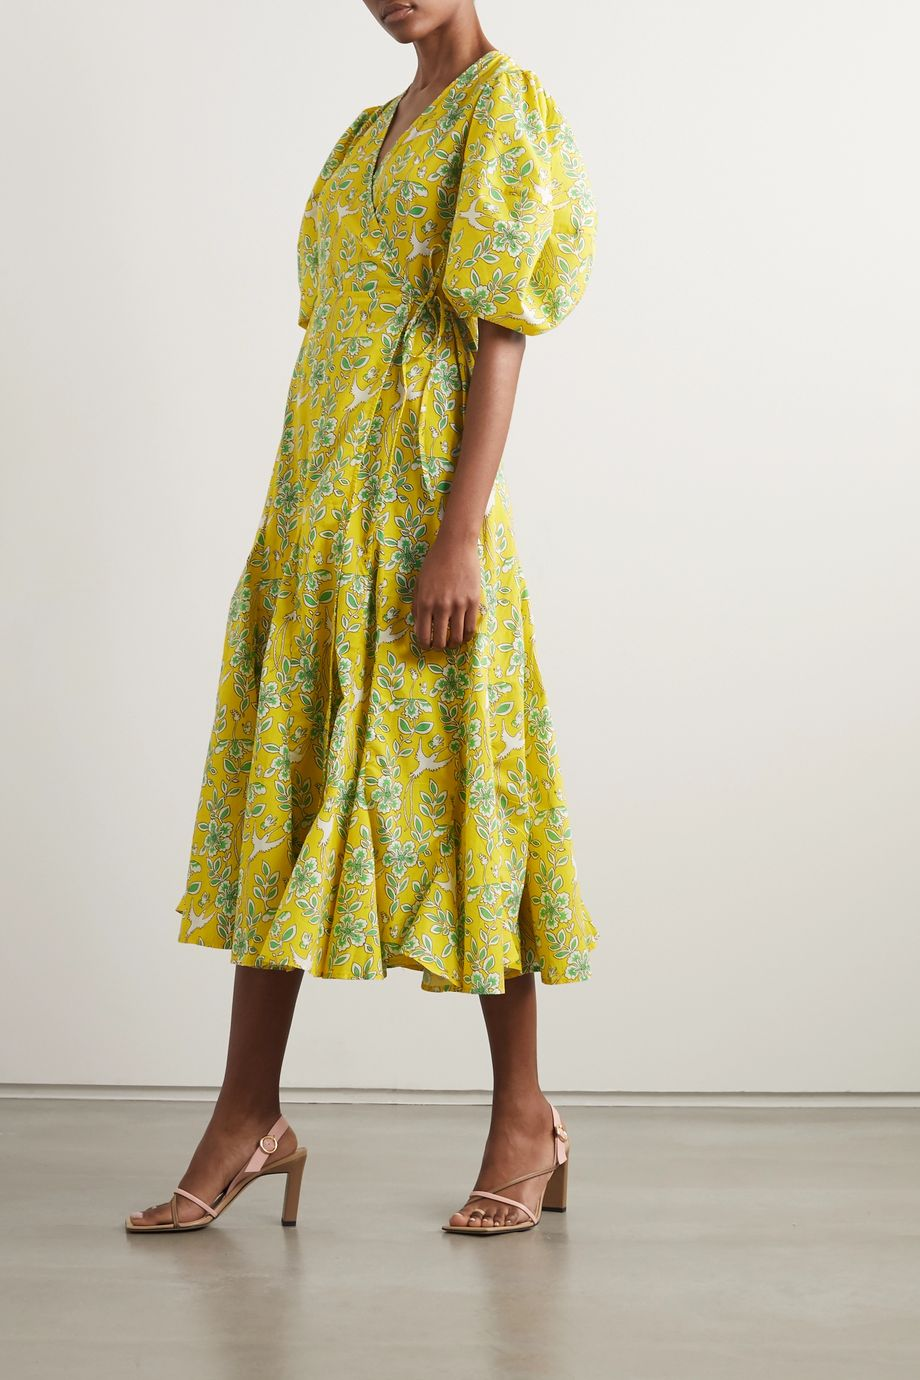 Rhode Fiona floral-print cotton-poplin wrap dress